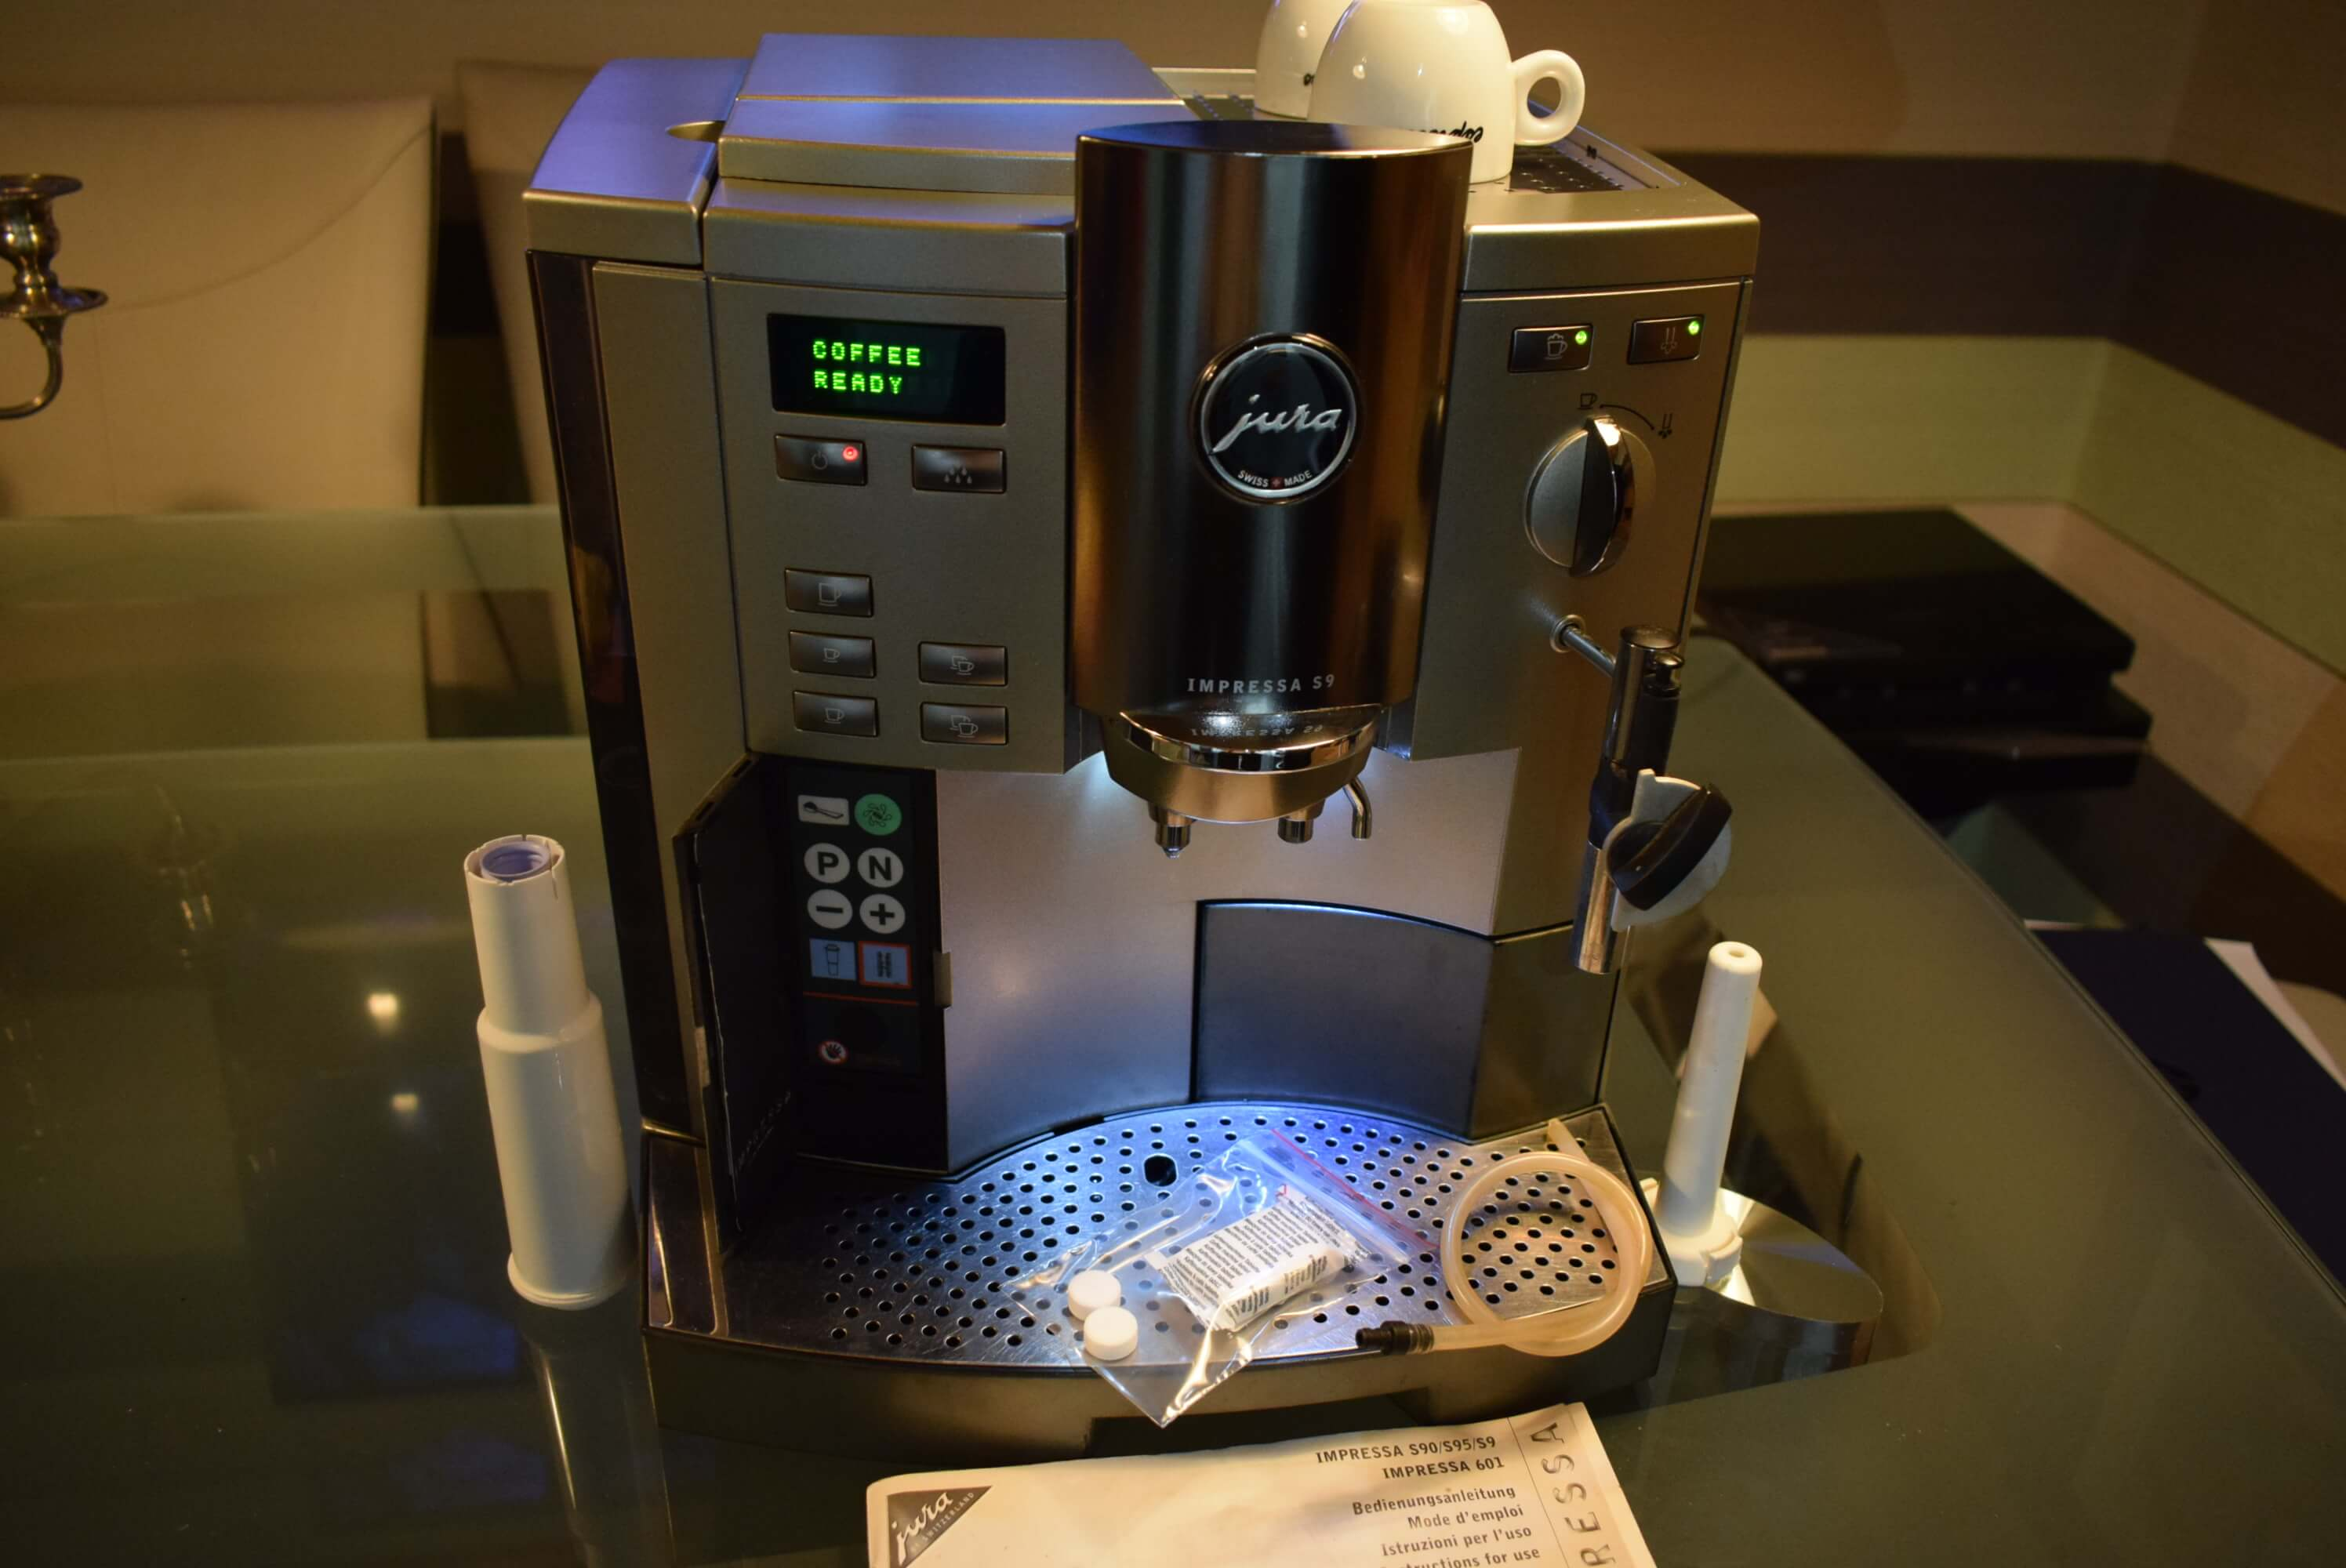 jura impressa s9 bean to cup coffee machine  u2013 cappuccino  u2013 ucm